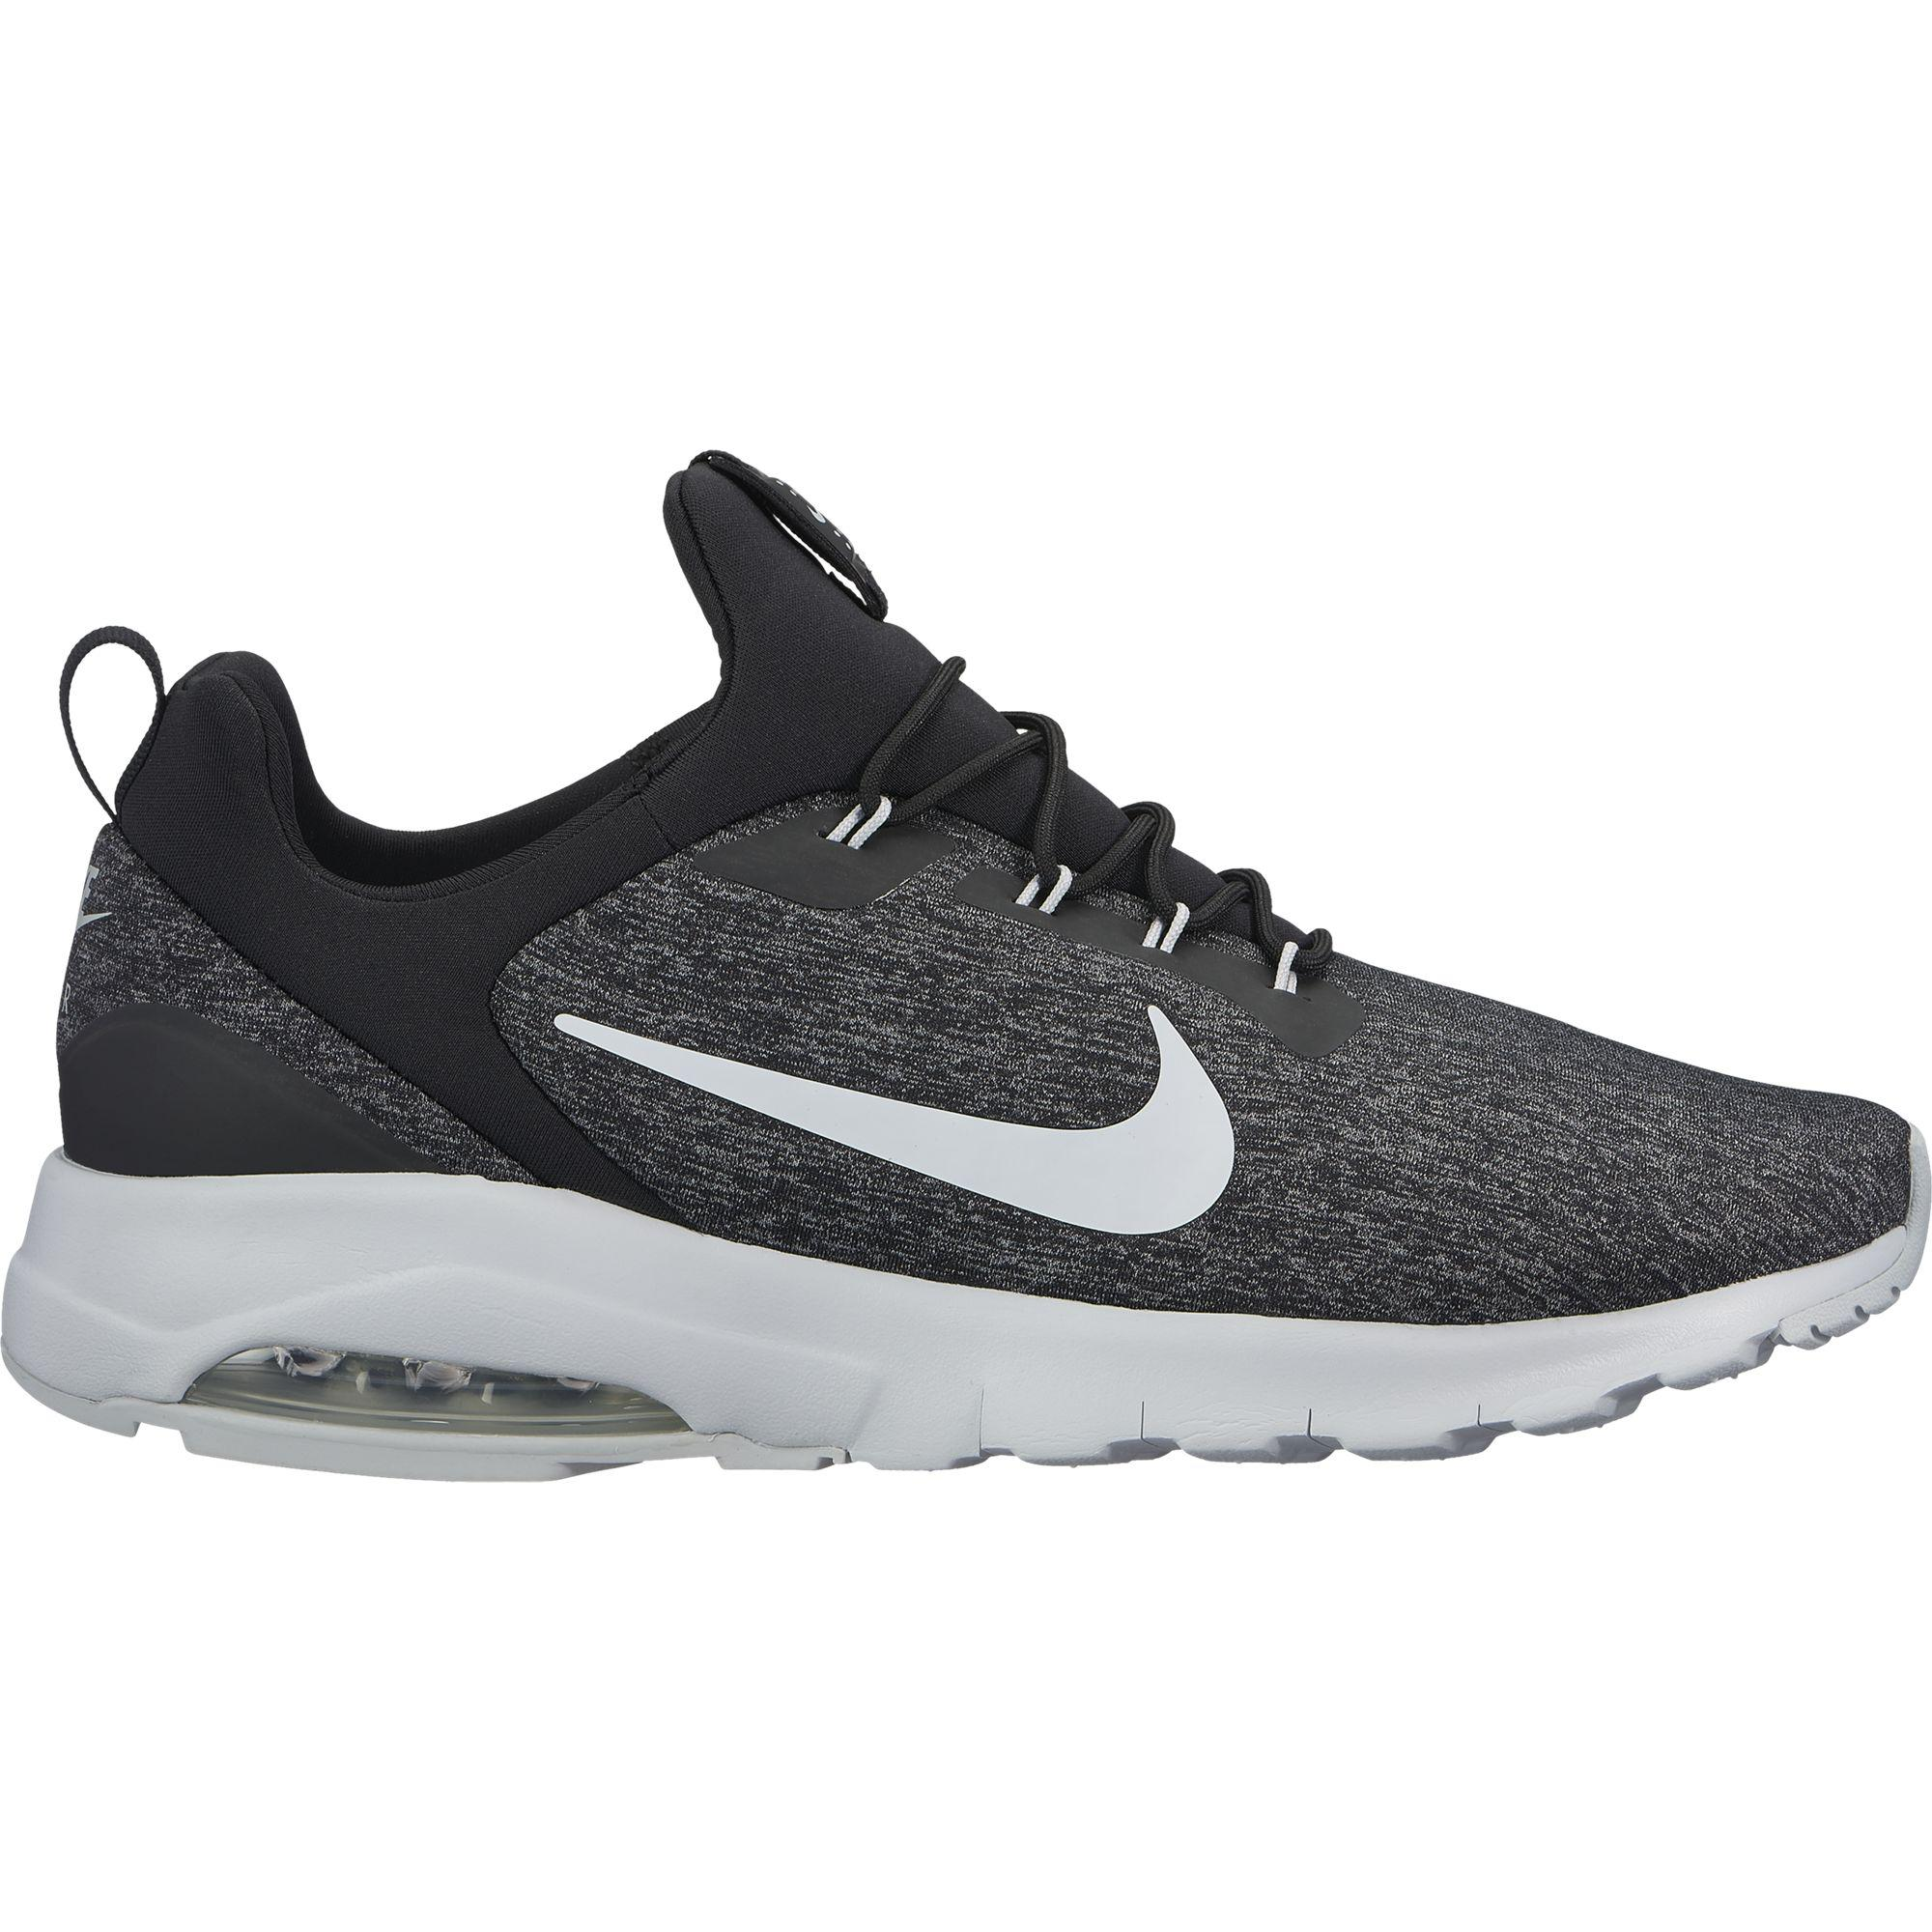 buy popular a0156 8abd5 Nike Mens Air Max Motion Running Shoes - Racer Black Pure Platinum -  Tennisnuts.com